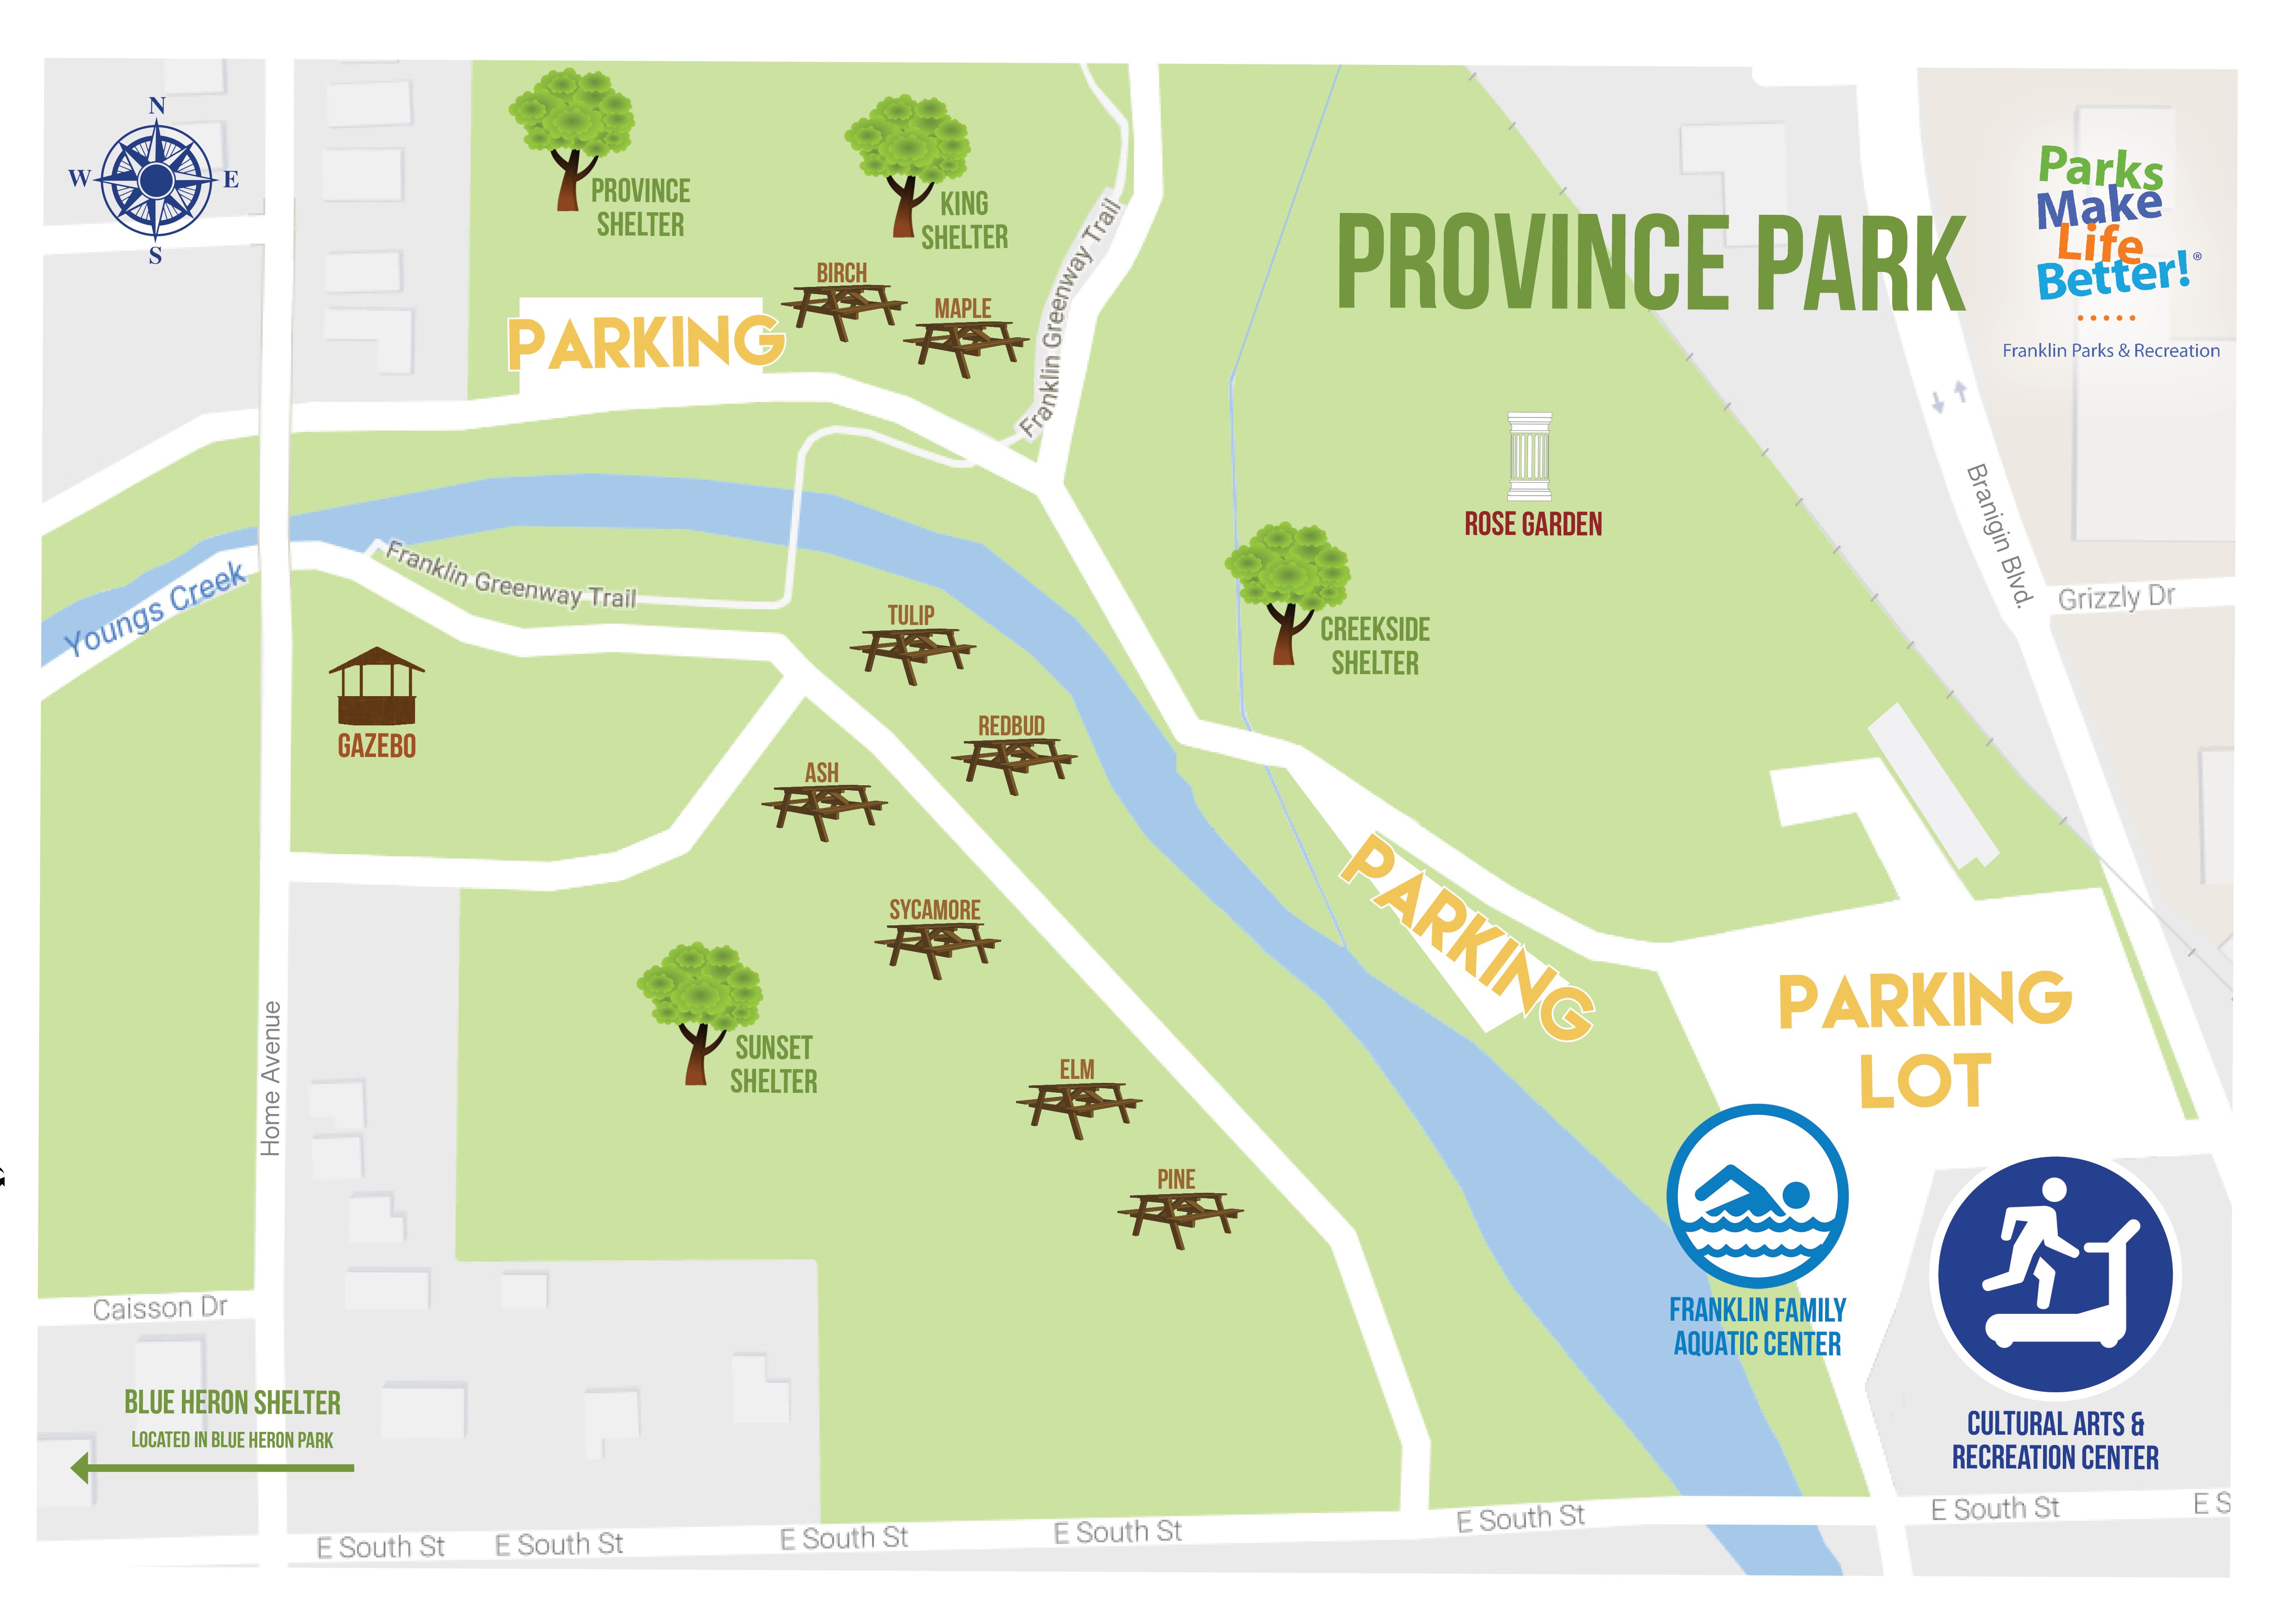 Province Park Map (Shelters)